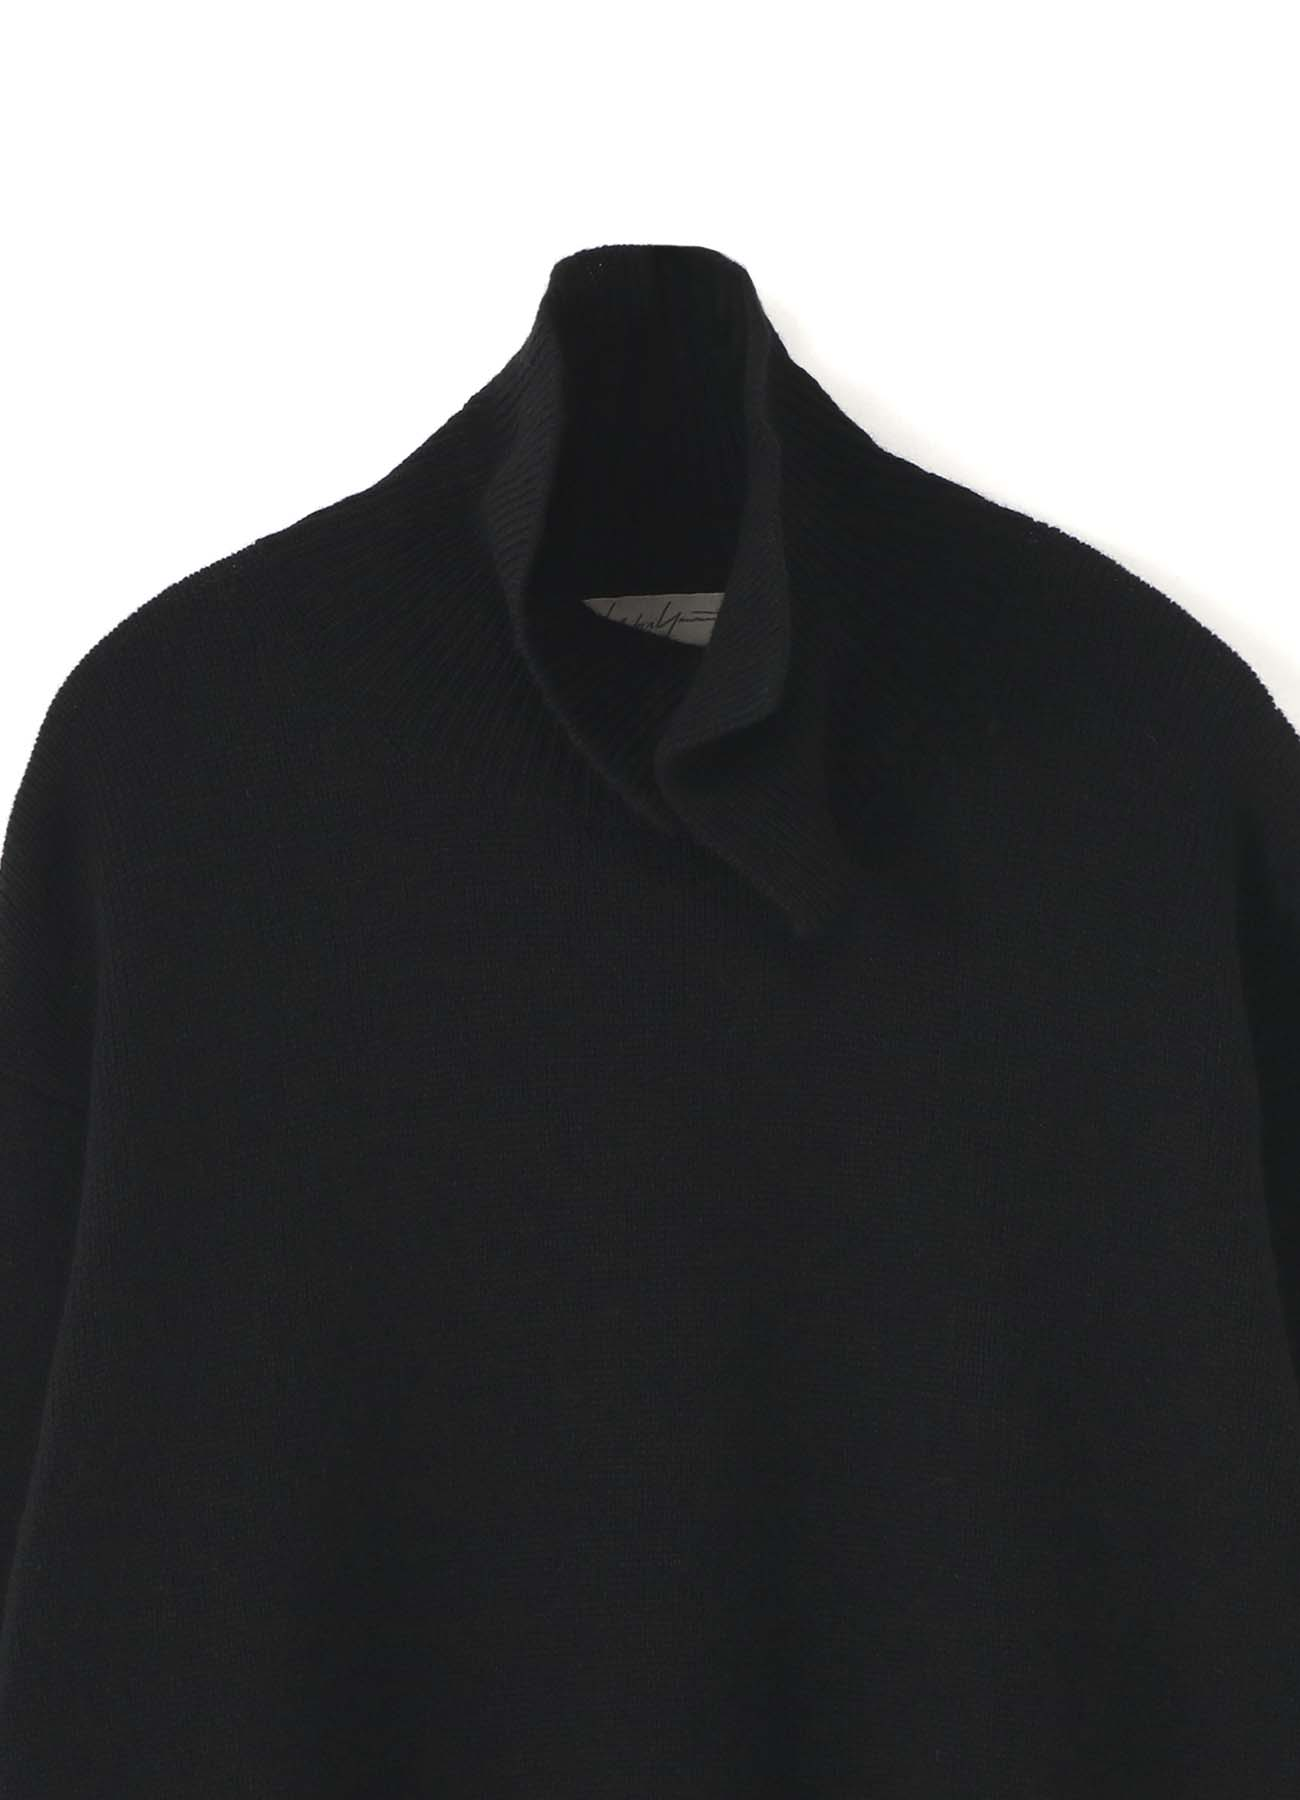 7G LAYER UNEVEN COLLAR TURTLE NECK